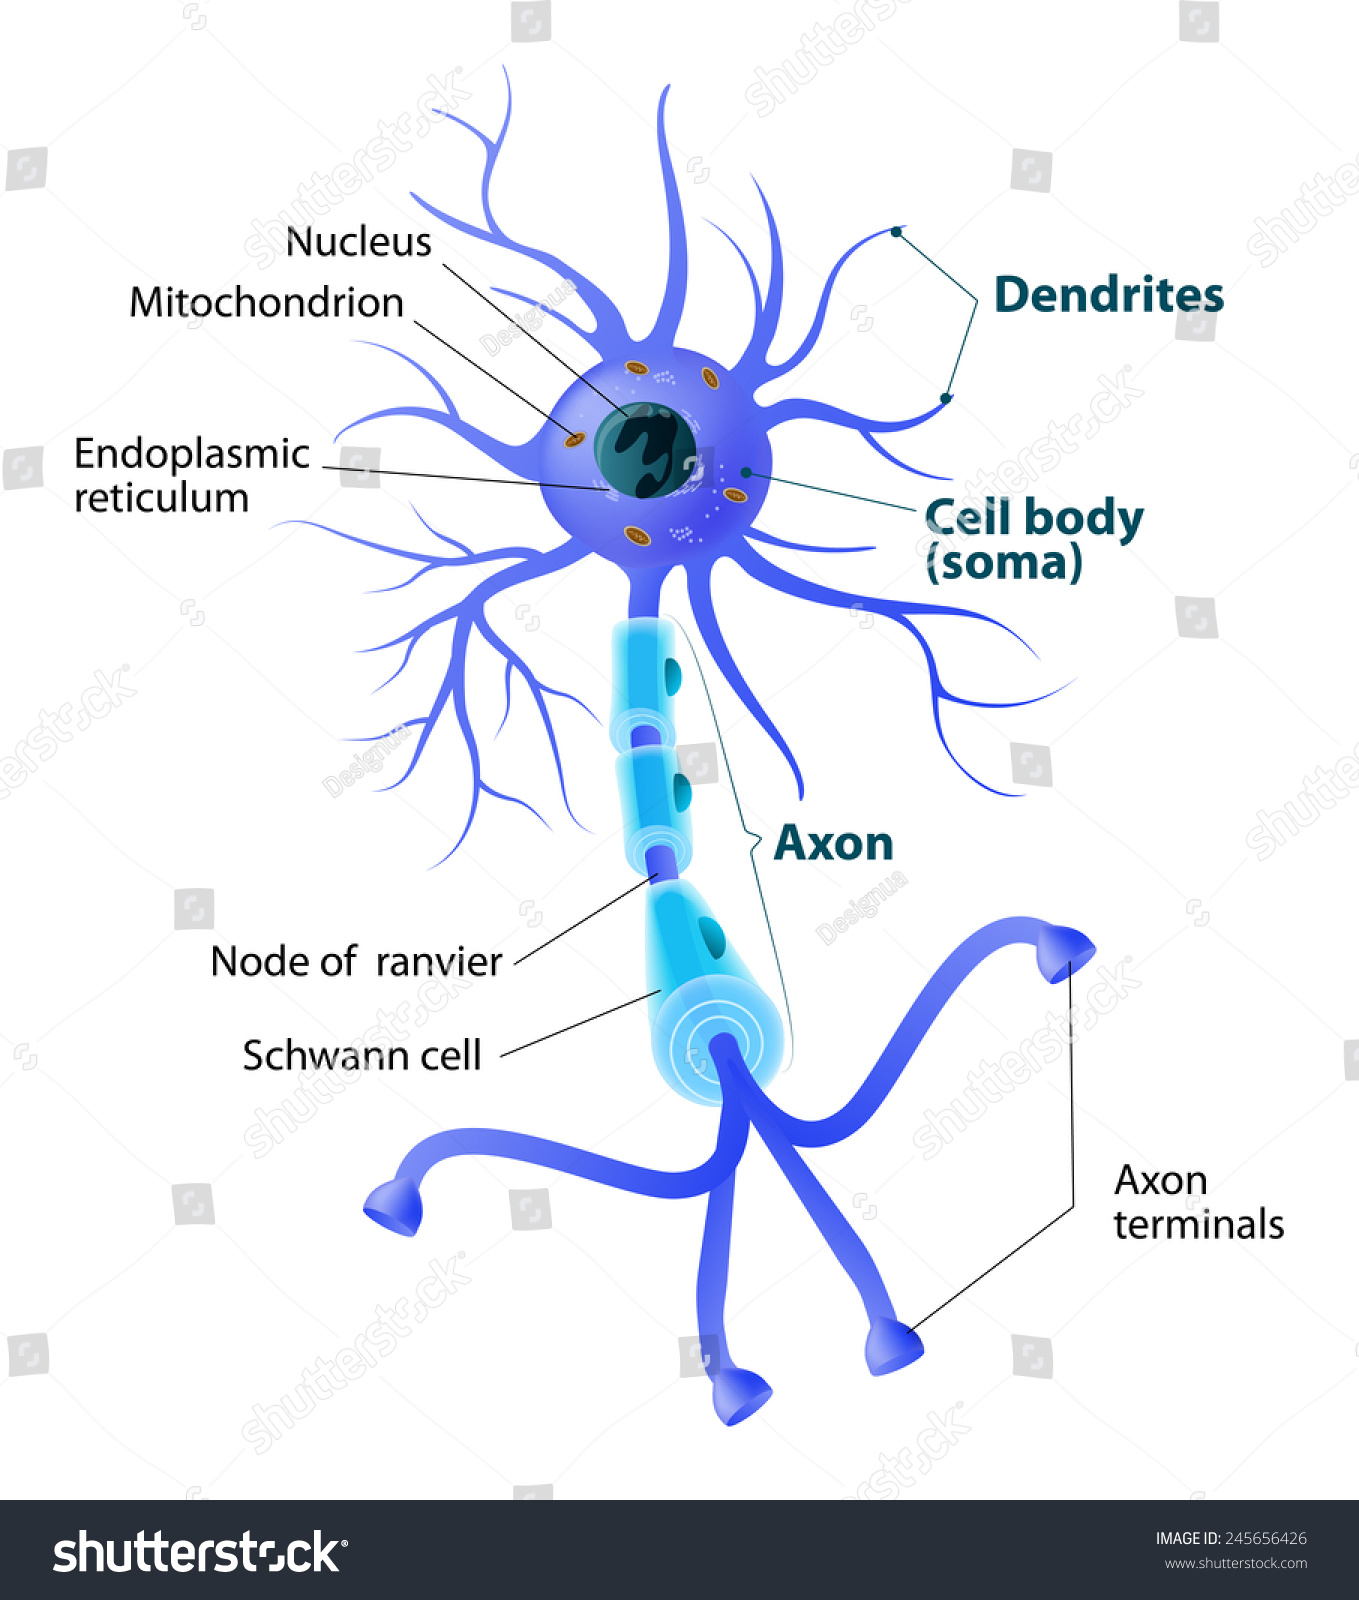 Anatomy Typical Human Neuron Structure Neuron Stock Vector ...